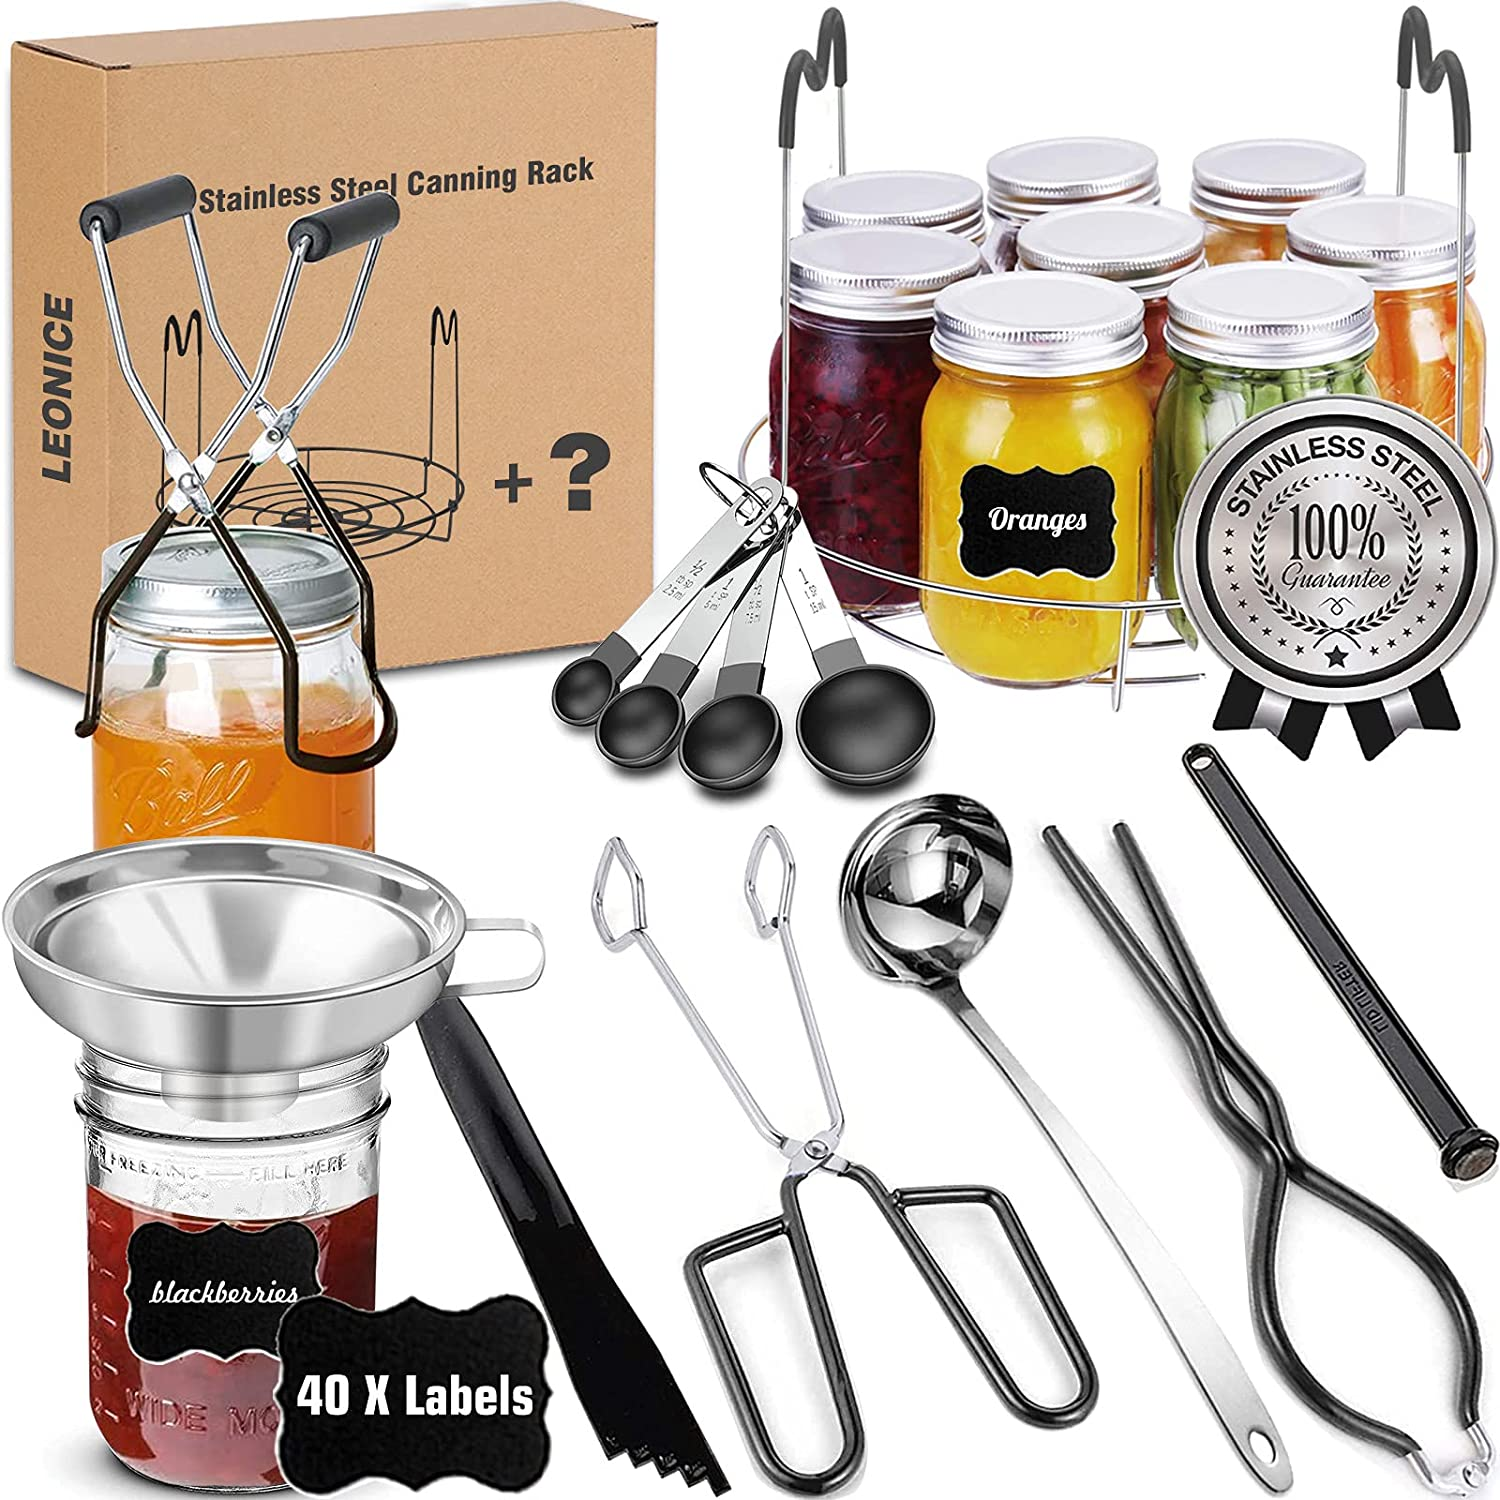 Canning Supplies Starter Kit, Stainless Steel Canning Set Tools: Rack, Ladle, Measuring Spoons, Funnel, Tongs, Jar Lifter, Lid Lifter, Bubble Popper, Lable for Canning Pot, Mason Jar, Beginner - Black